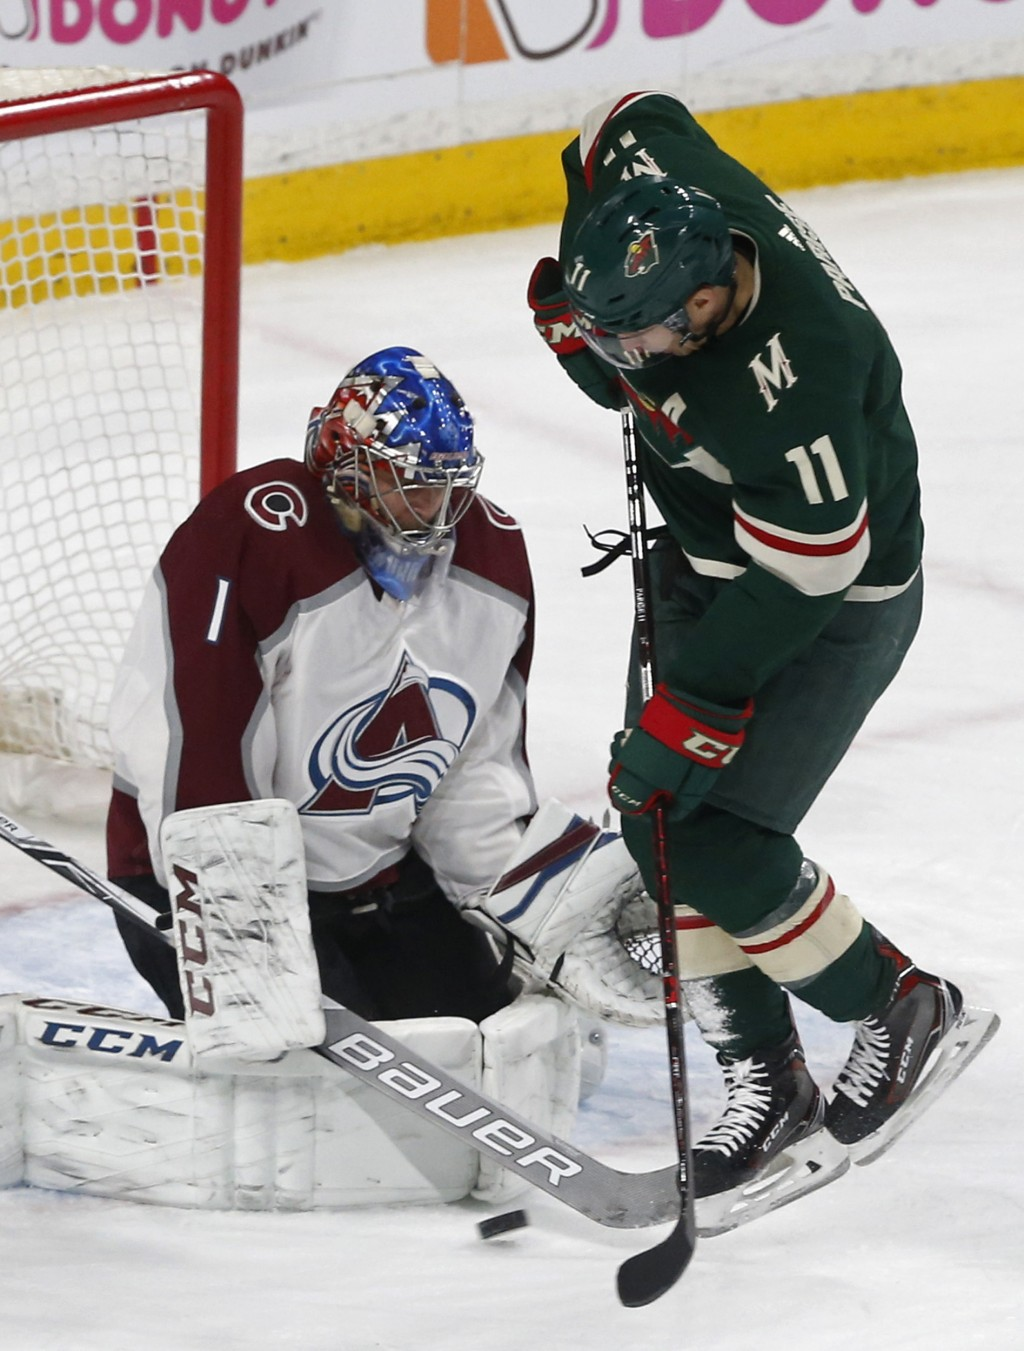 Minnesota Wild's Zach Parise, right, attempts to score as Colorado Avalanche goalie Semyon Varlamov, of Russia, blocks the shot in the first period of